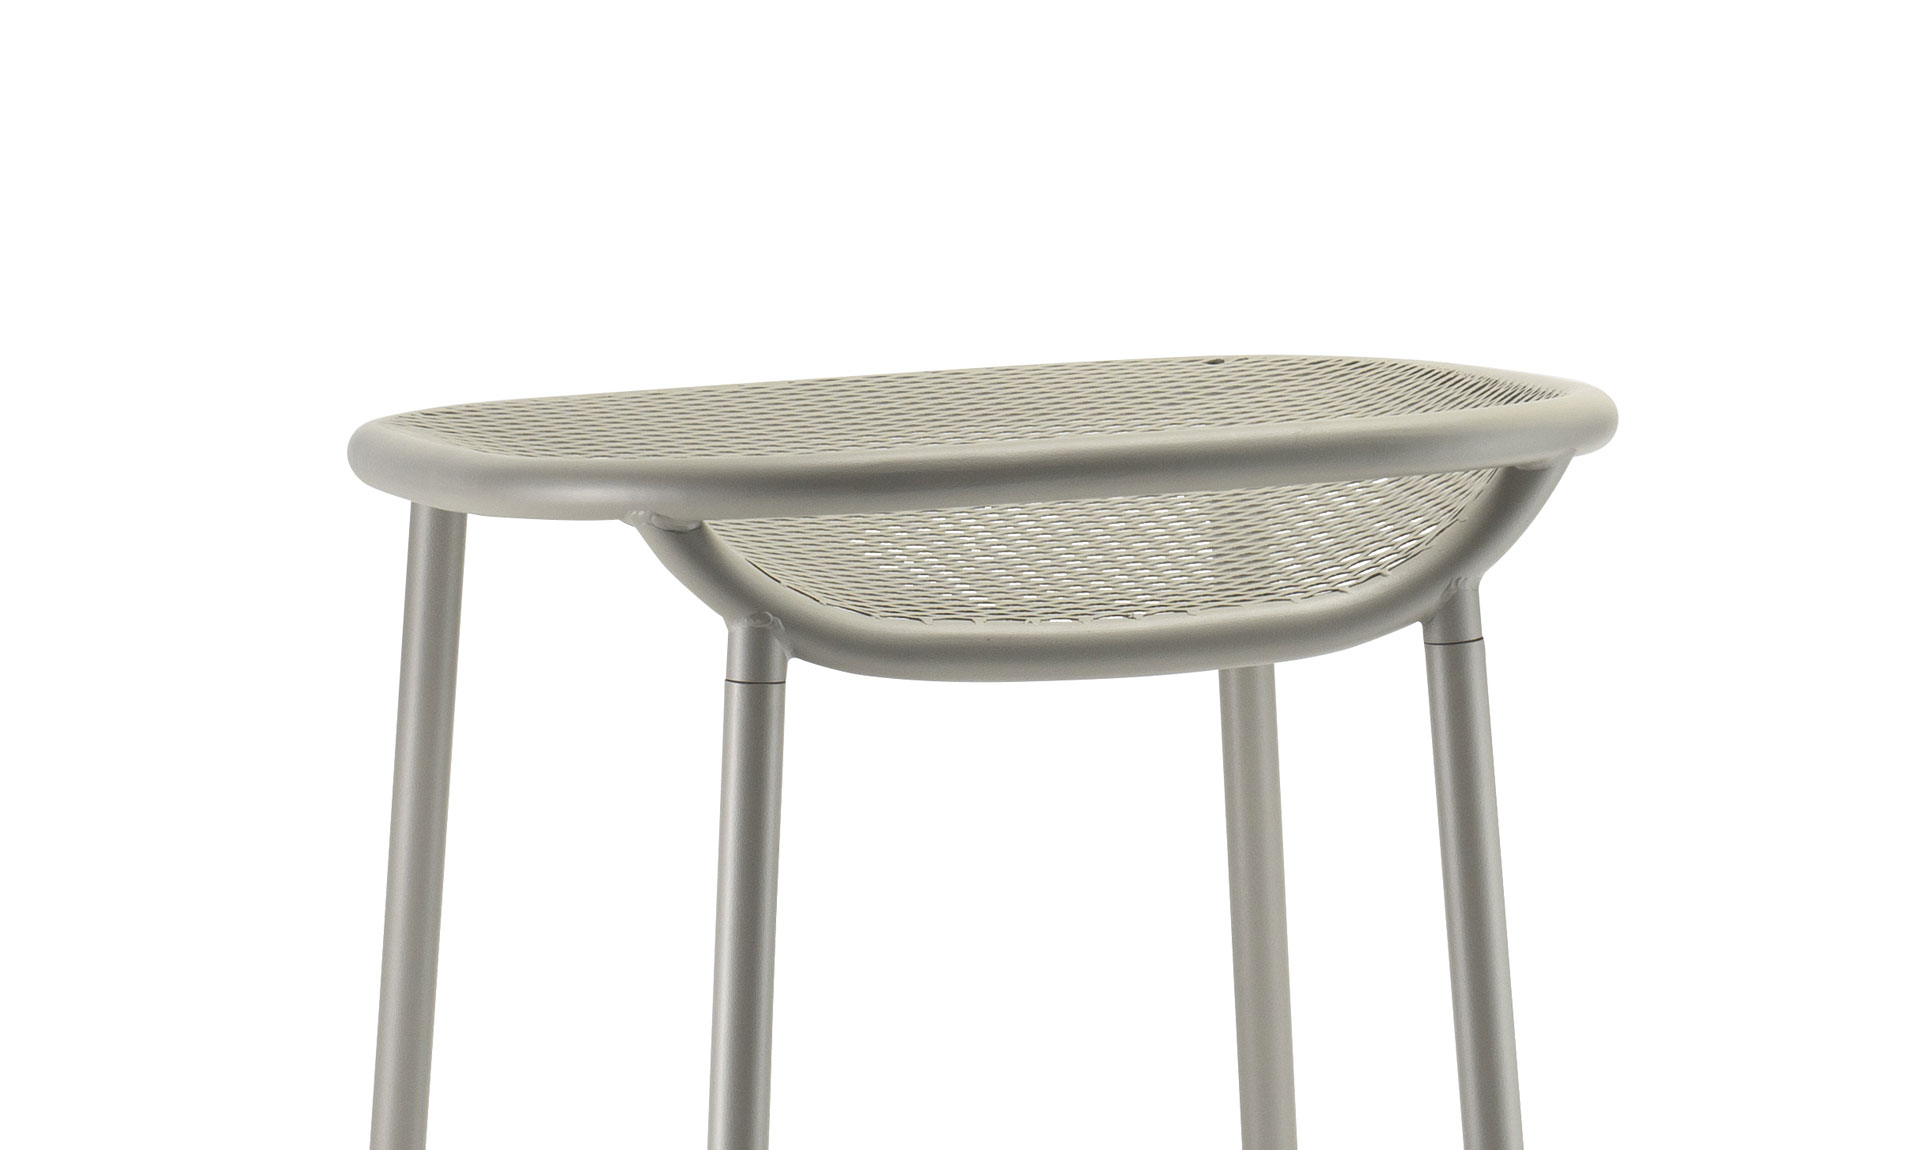 grille_stool_1